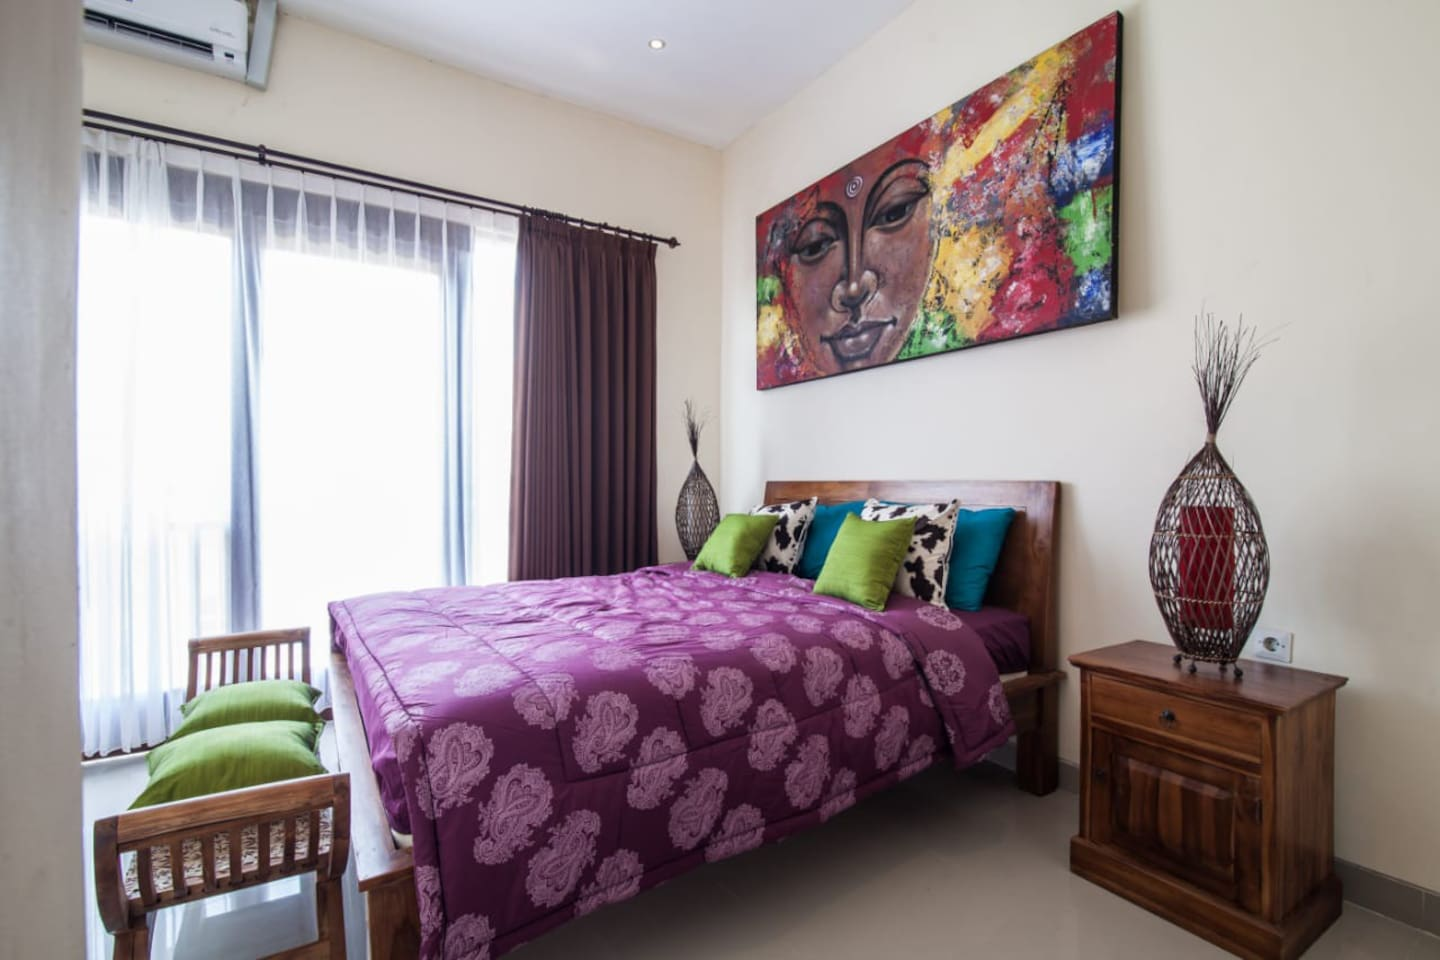 Private bedroom dbl queen bed